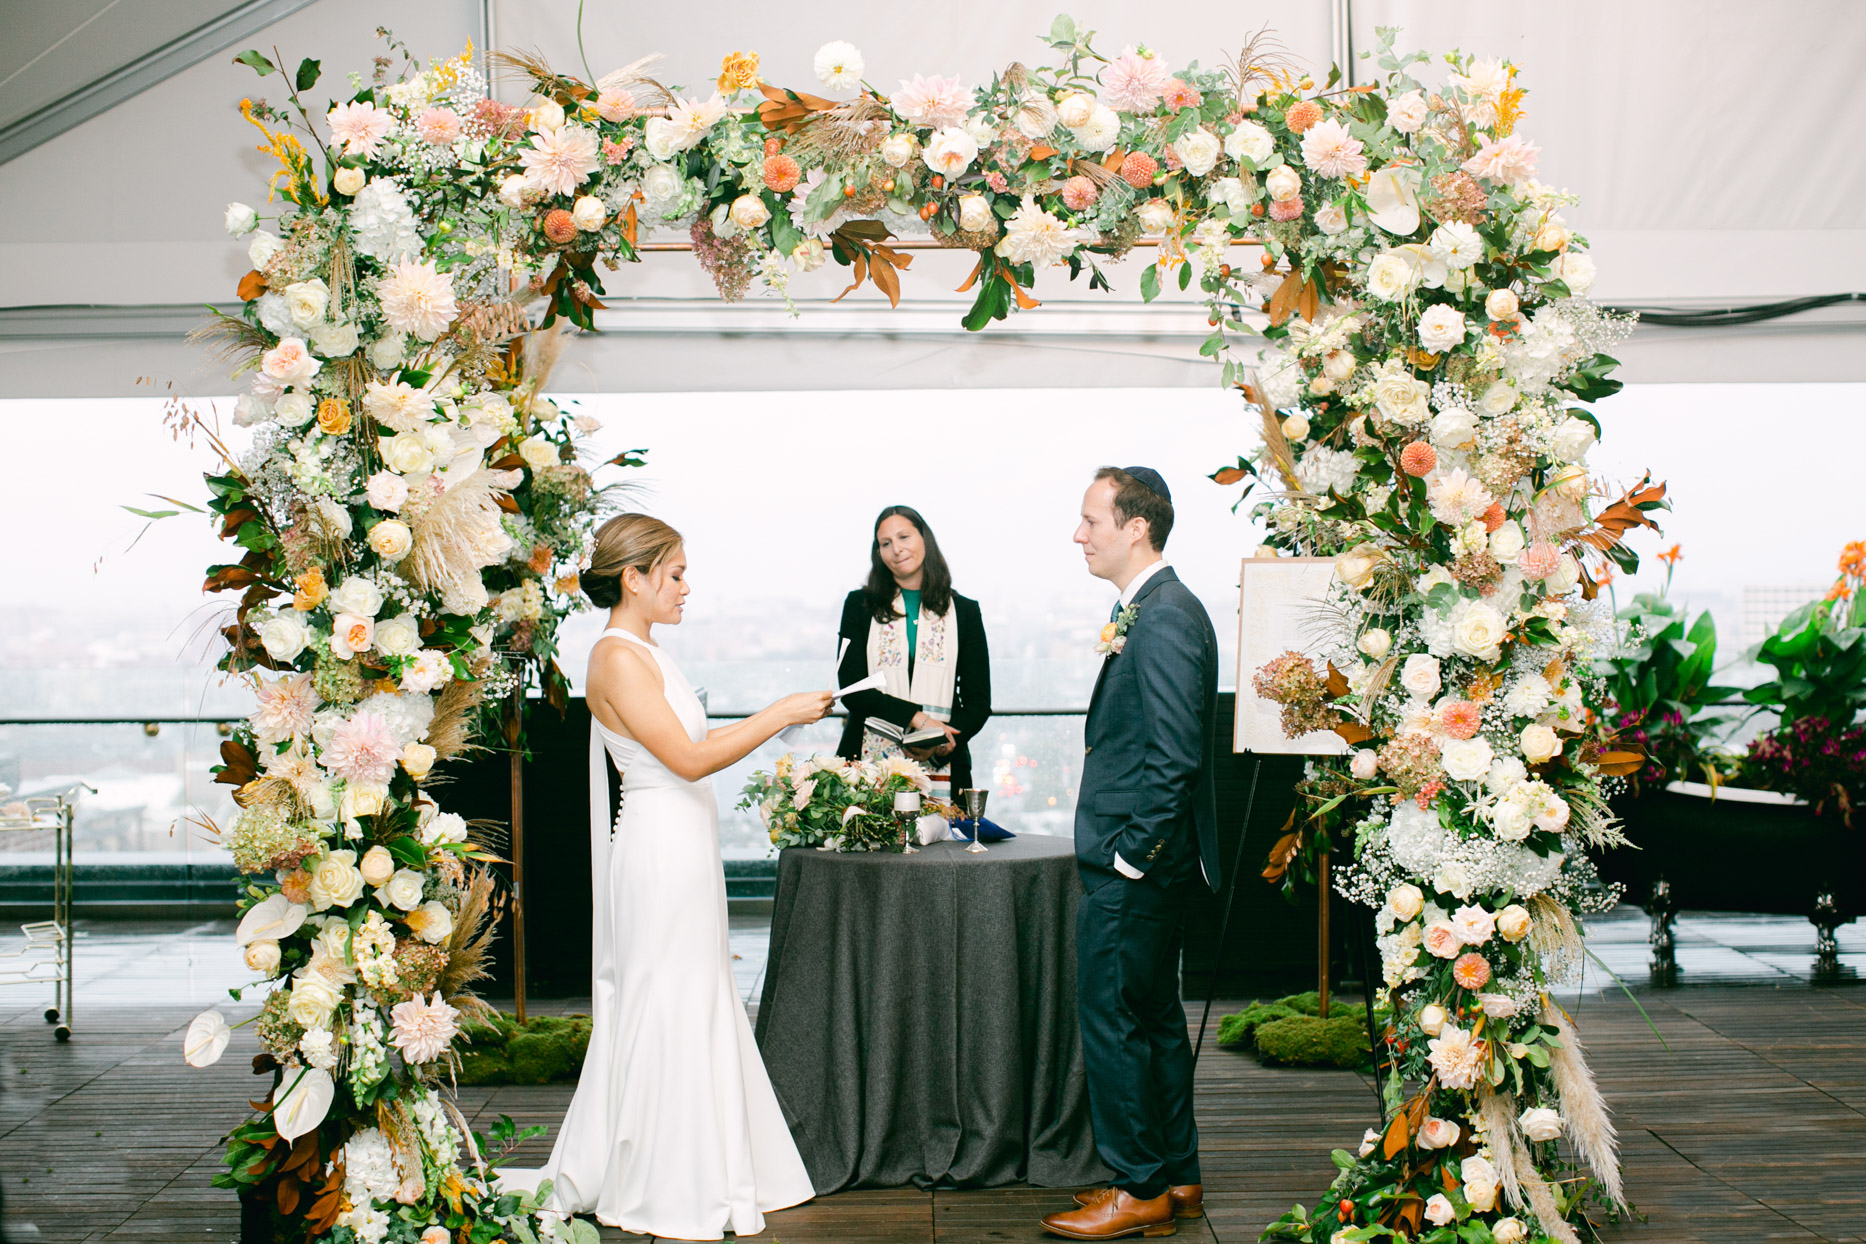 bride and groom changing vows under floral arch